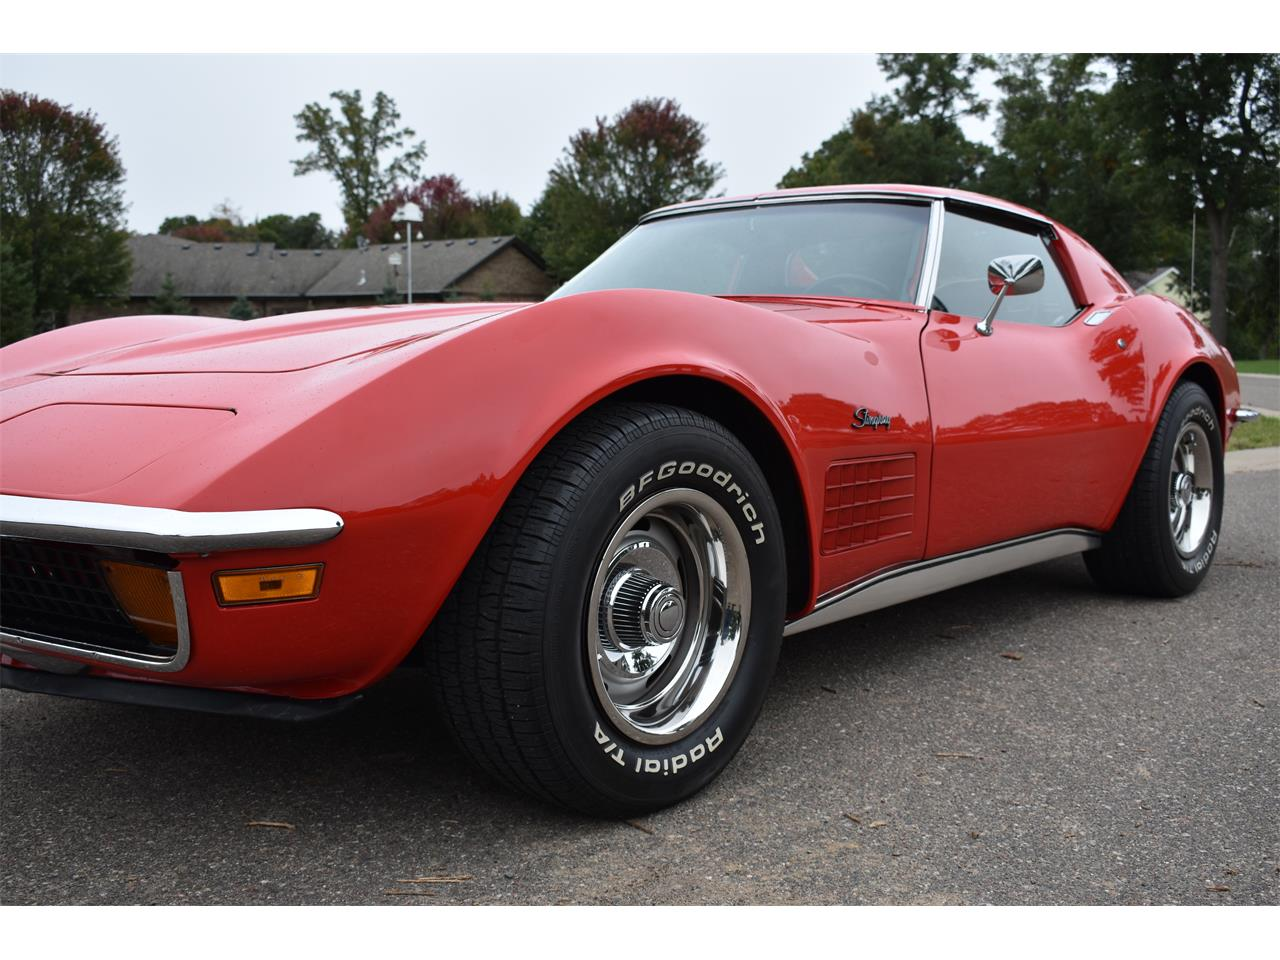 Large Picture of Classic '72 Chevrolet Corvette located in Minnesota Offered by a Private Seller - OMCE